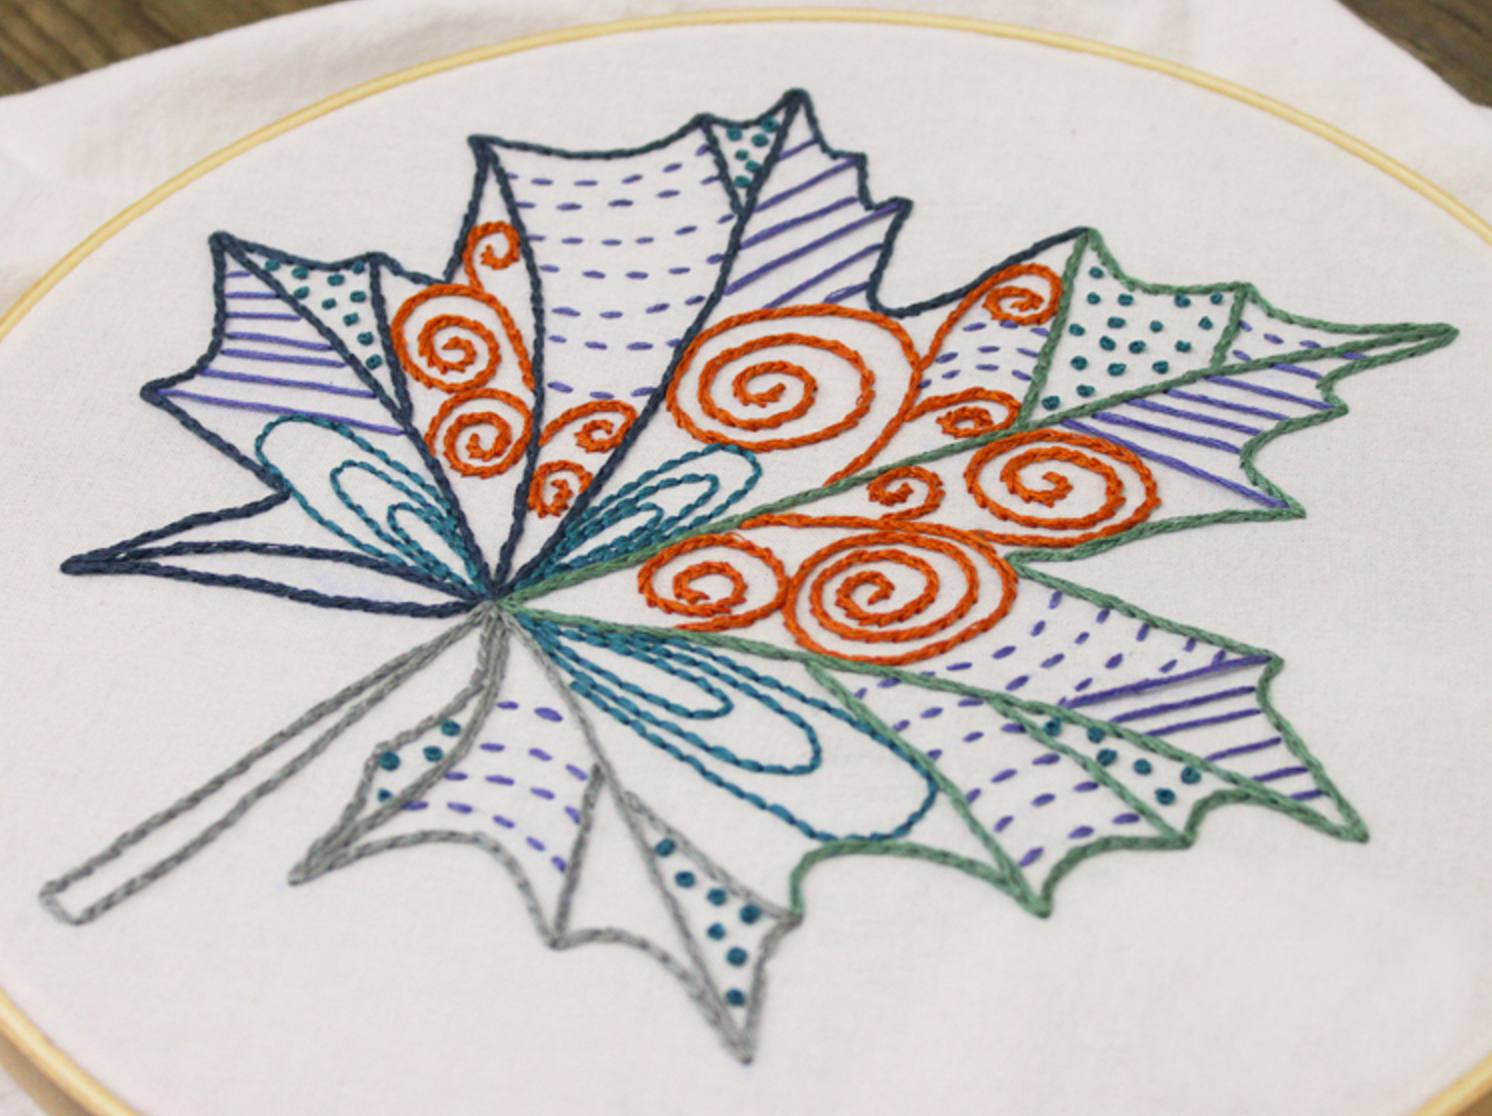 How To Make Hand Embroidery Patterns 10 Hand Embroidery Patterns For Autumn Stitching